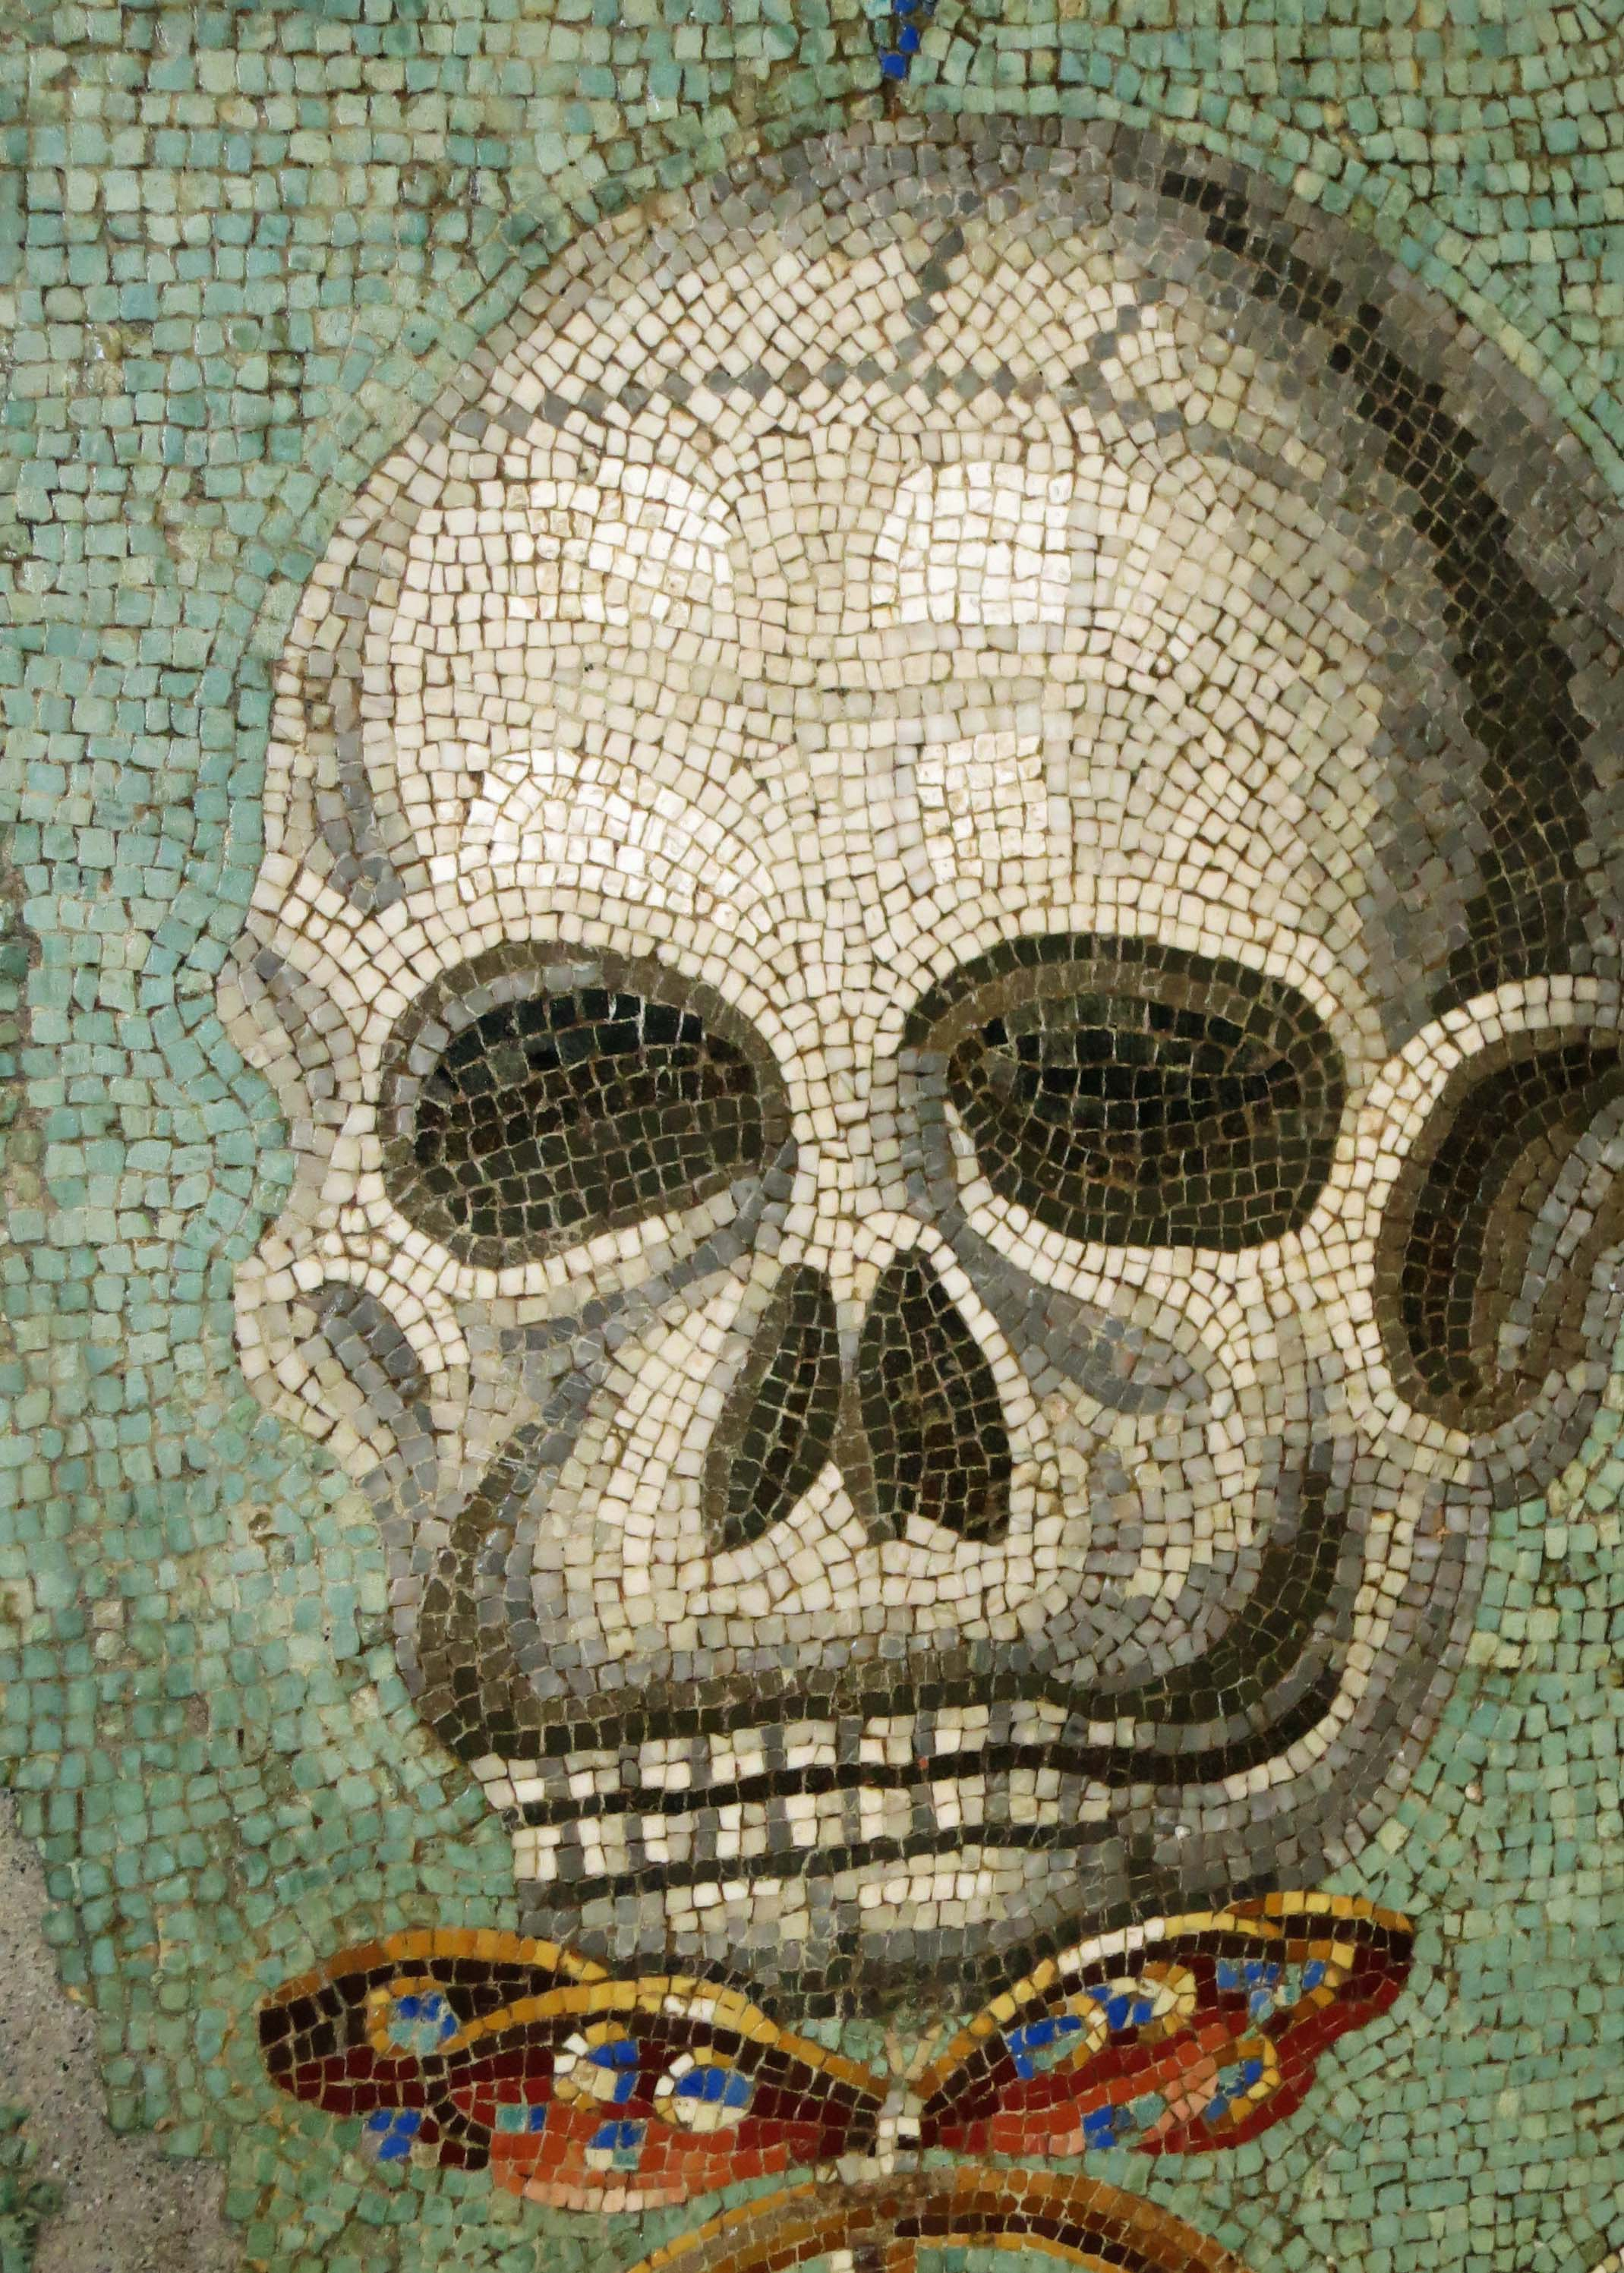 Mosaic skull at the Archeological Museum of Naples